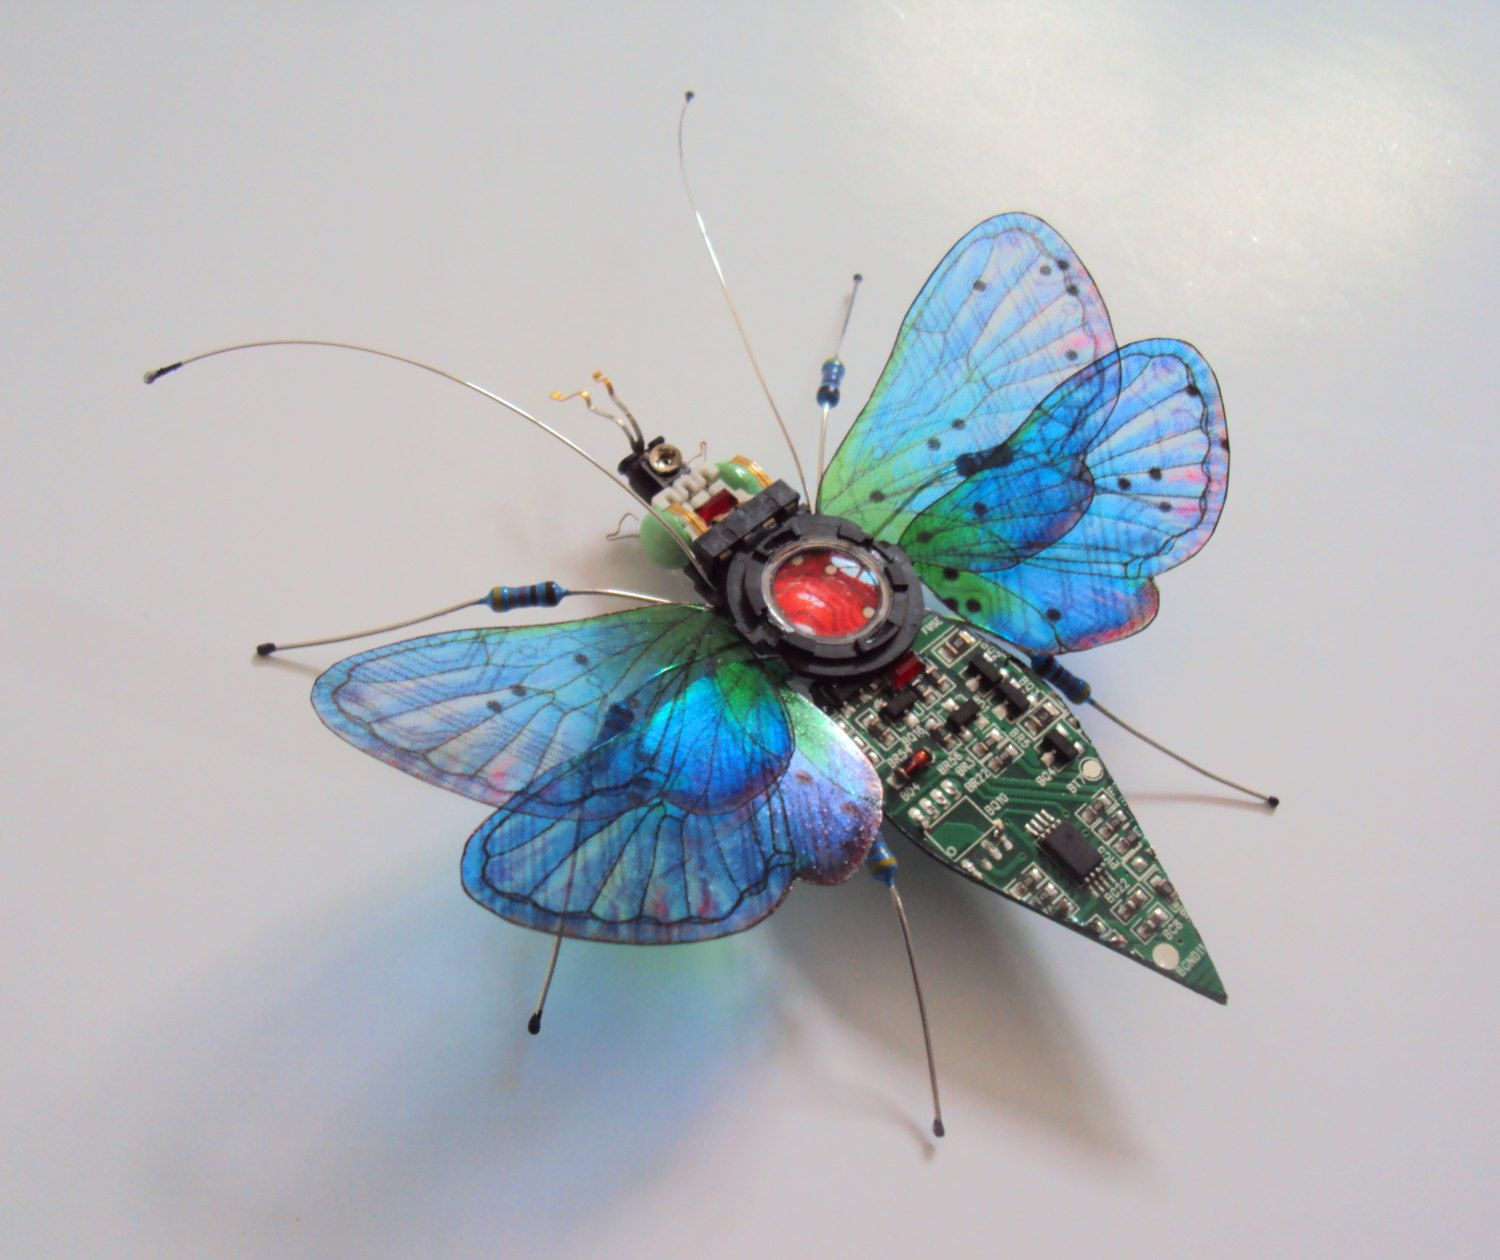 The 'Through the Looking Glass' Circuit Board Insect. by DewLeaf on Etsy